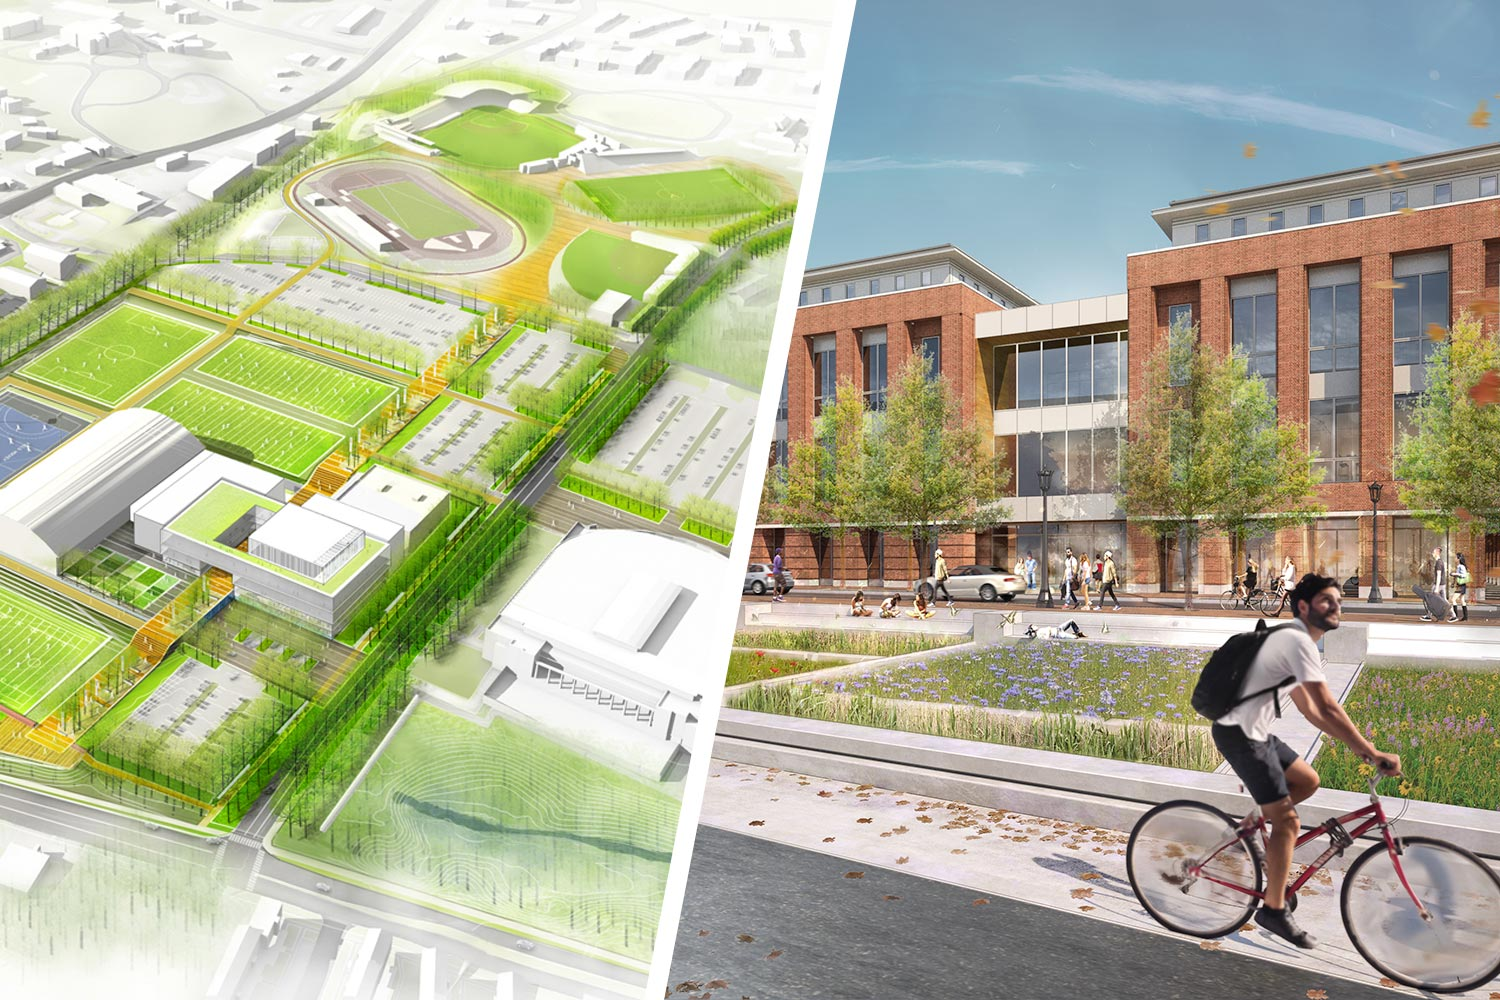 The Athletics Master Plan includes several new facilities and programs supporting student-athletes; the new Student Health and Wellness Center will include numerous health care services, a traveler's clinic, a retail pharmacy and other resources.